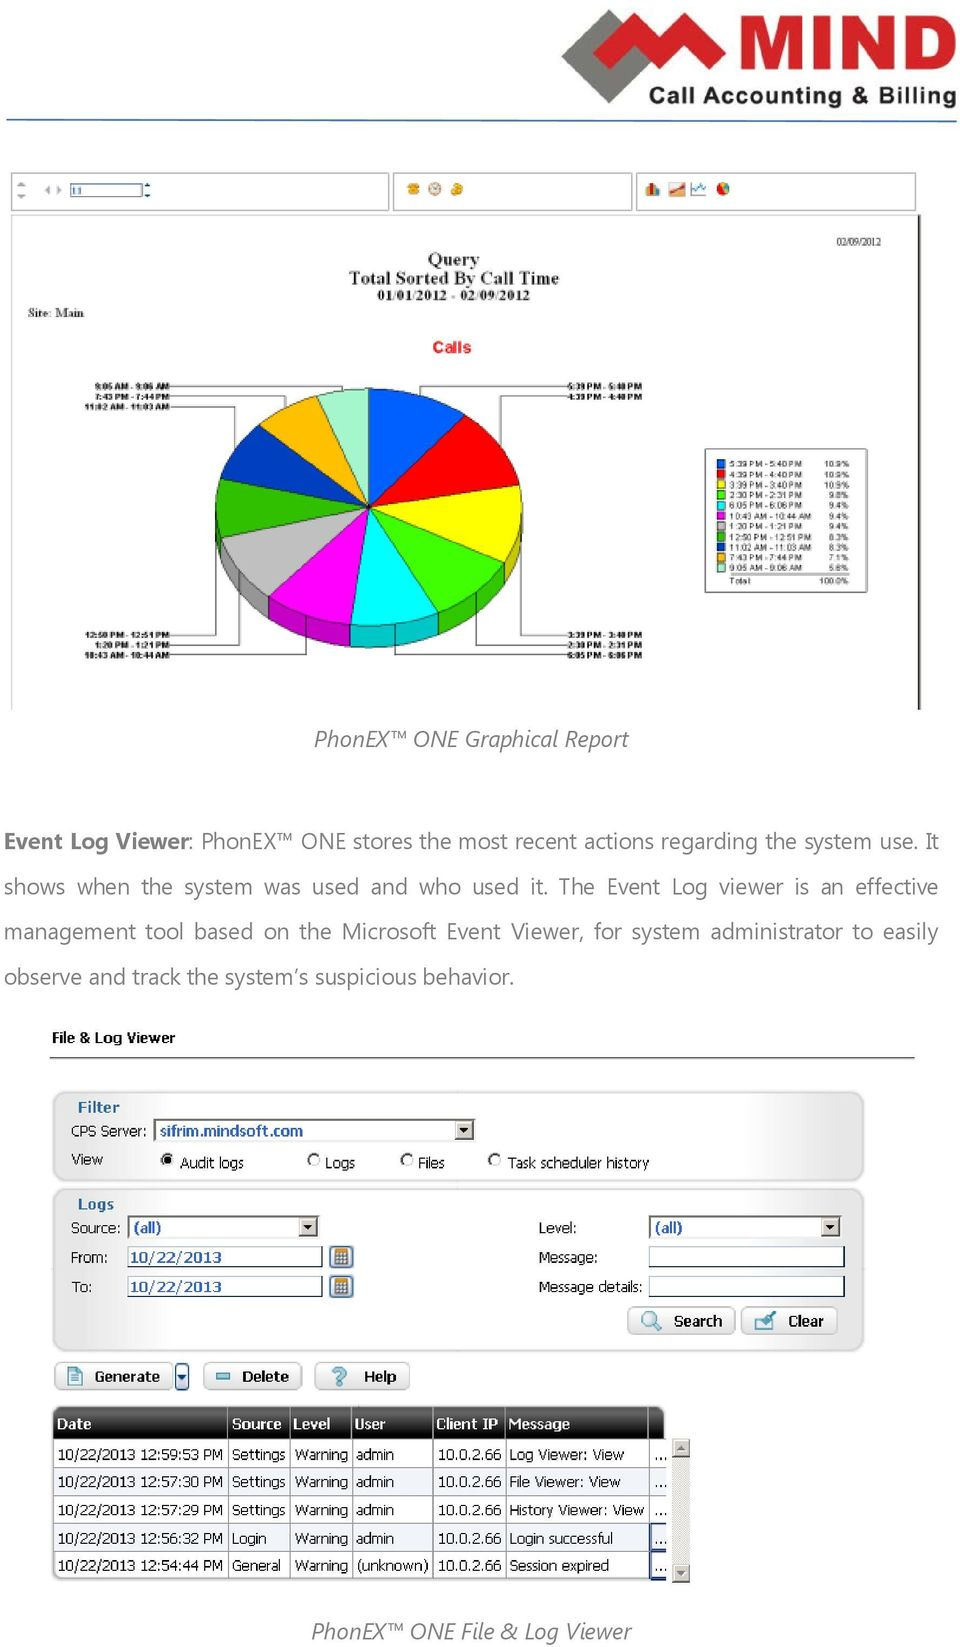 The Event Log viewer is an effective management tool based on the Microsoft Event Viewer,